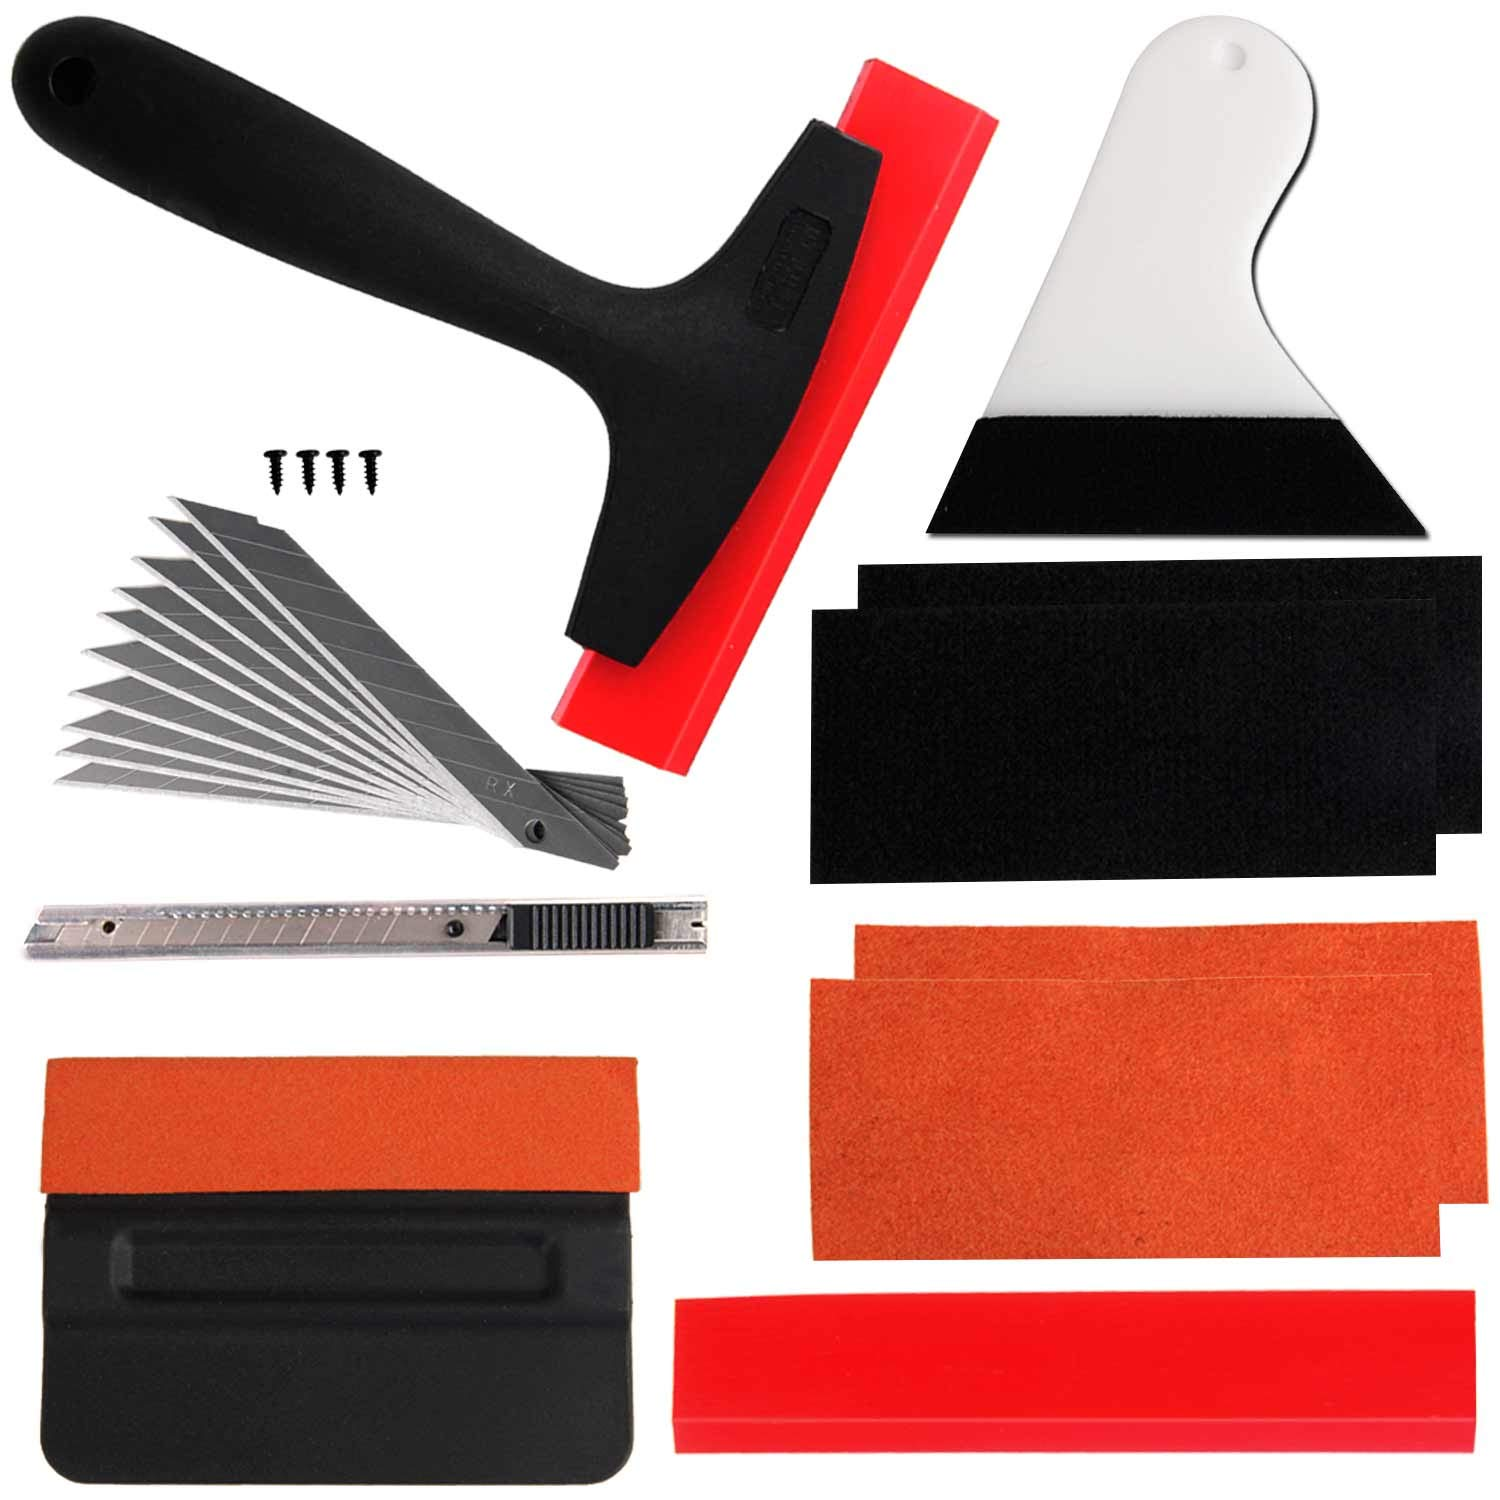 VZCY Vinyl Film Tool Kit, 10 PCS Vehicle Glass Protective Film Car Window Wrapping Tint Vinyl Installing Tool: Squeegees, Scrapers, Film Cutters